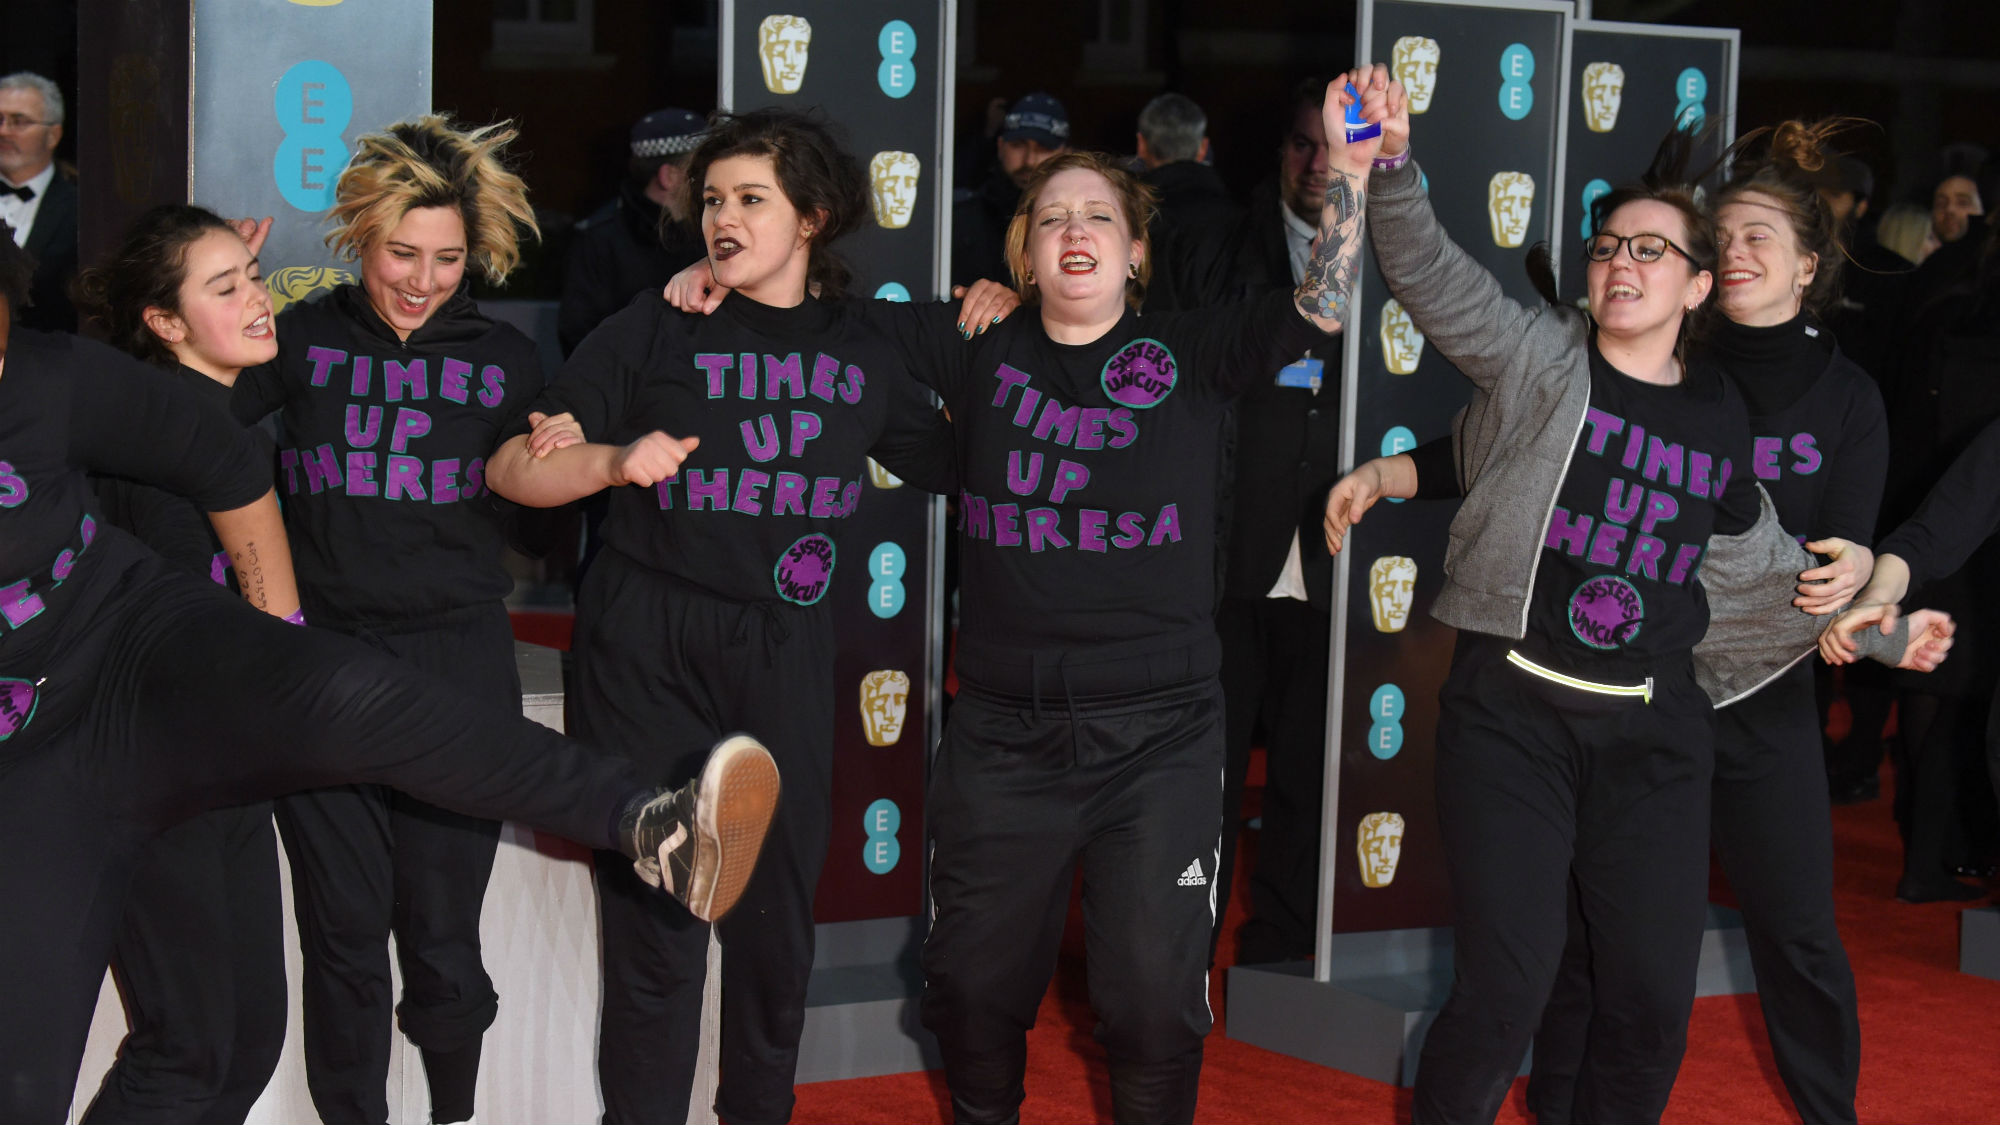 A band of feminist protestors storm the BAFTAs red carpet